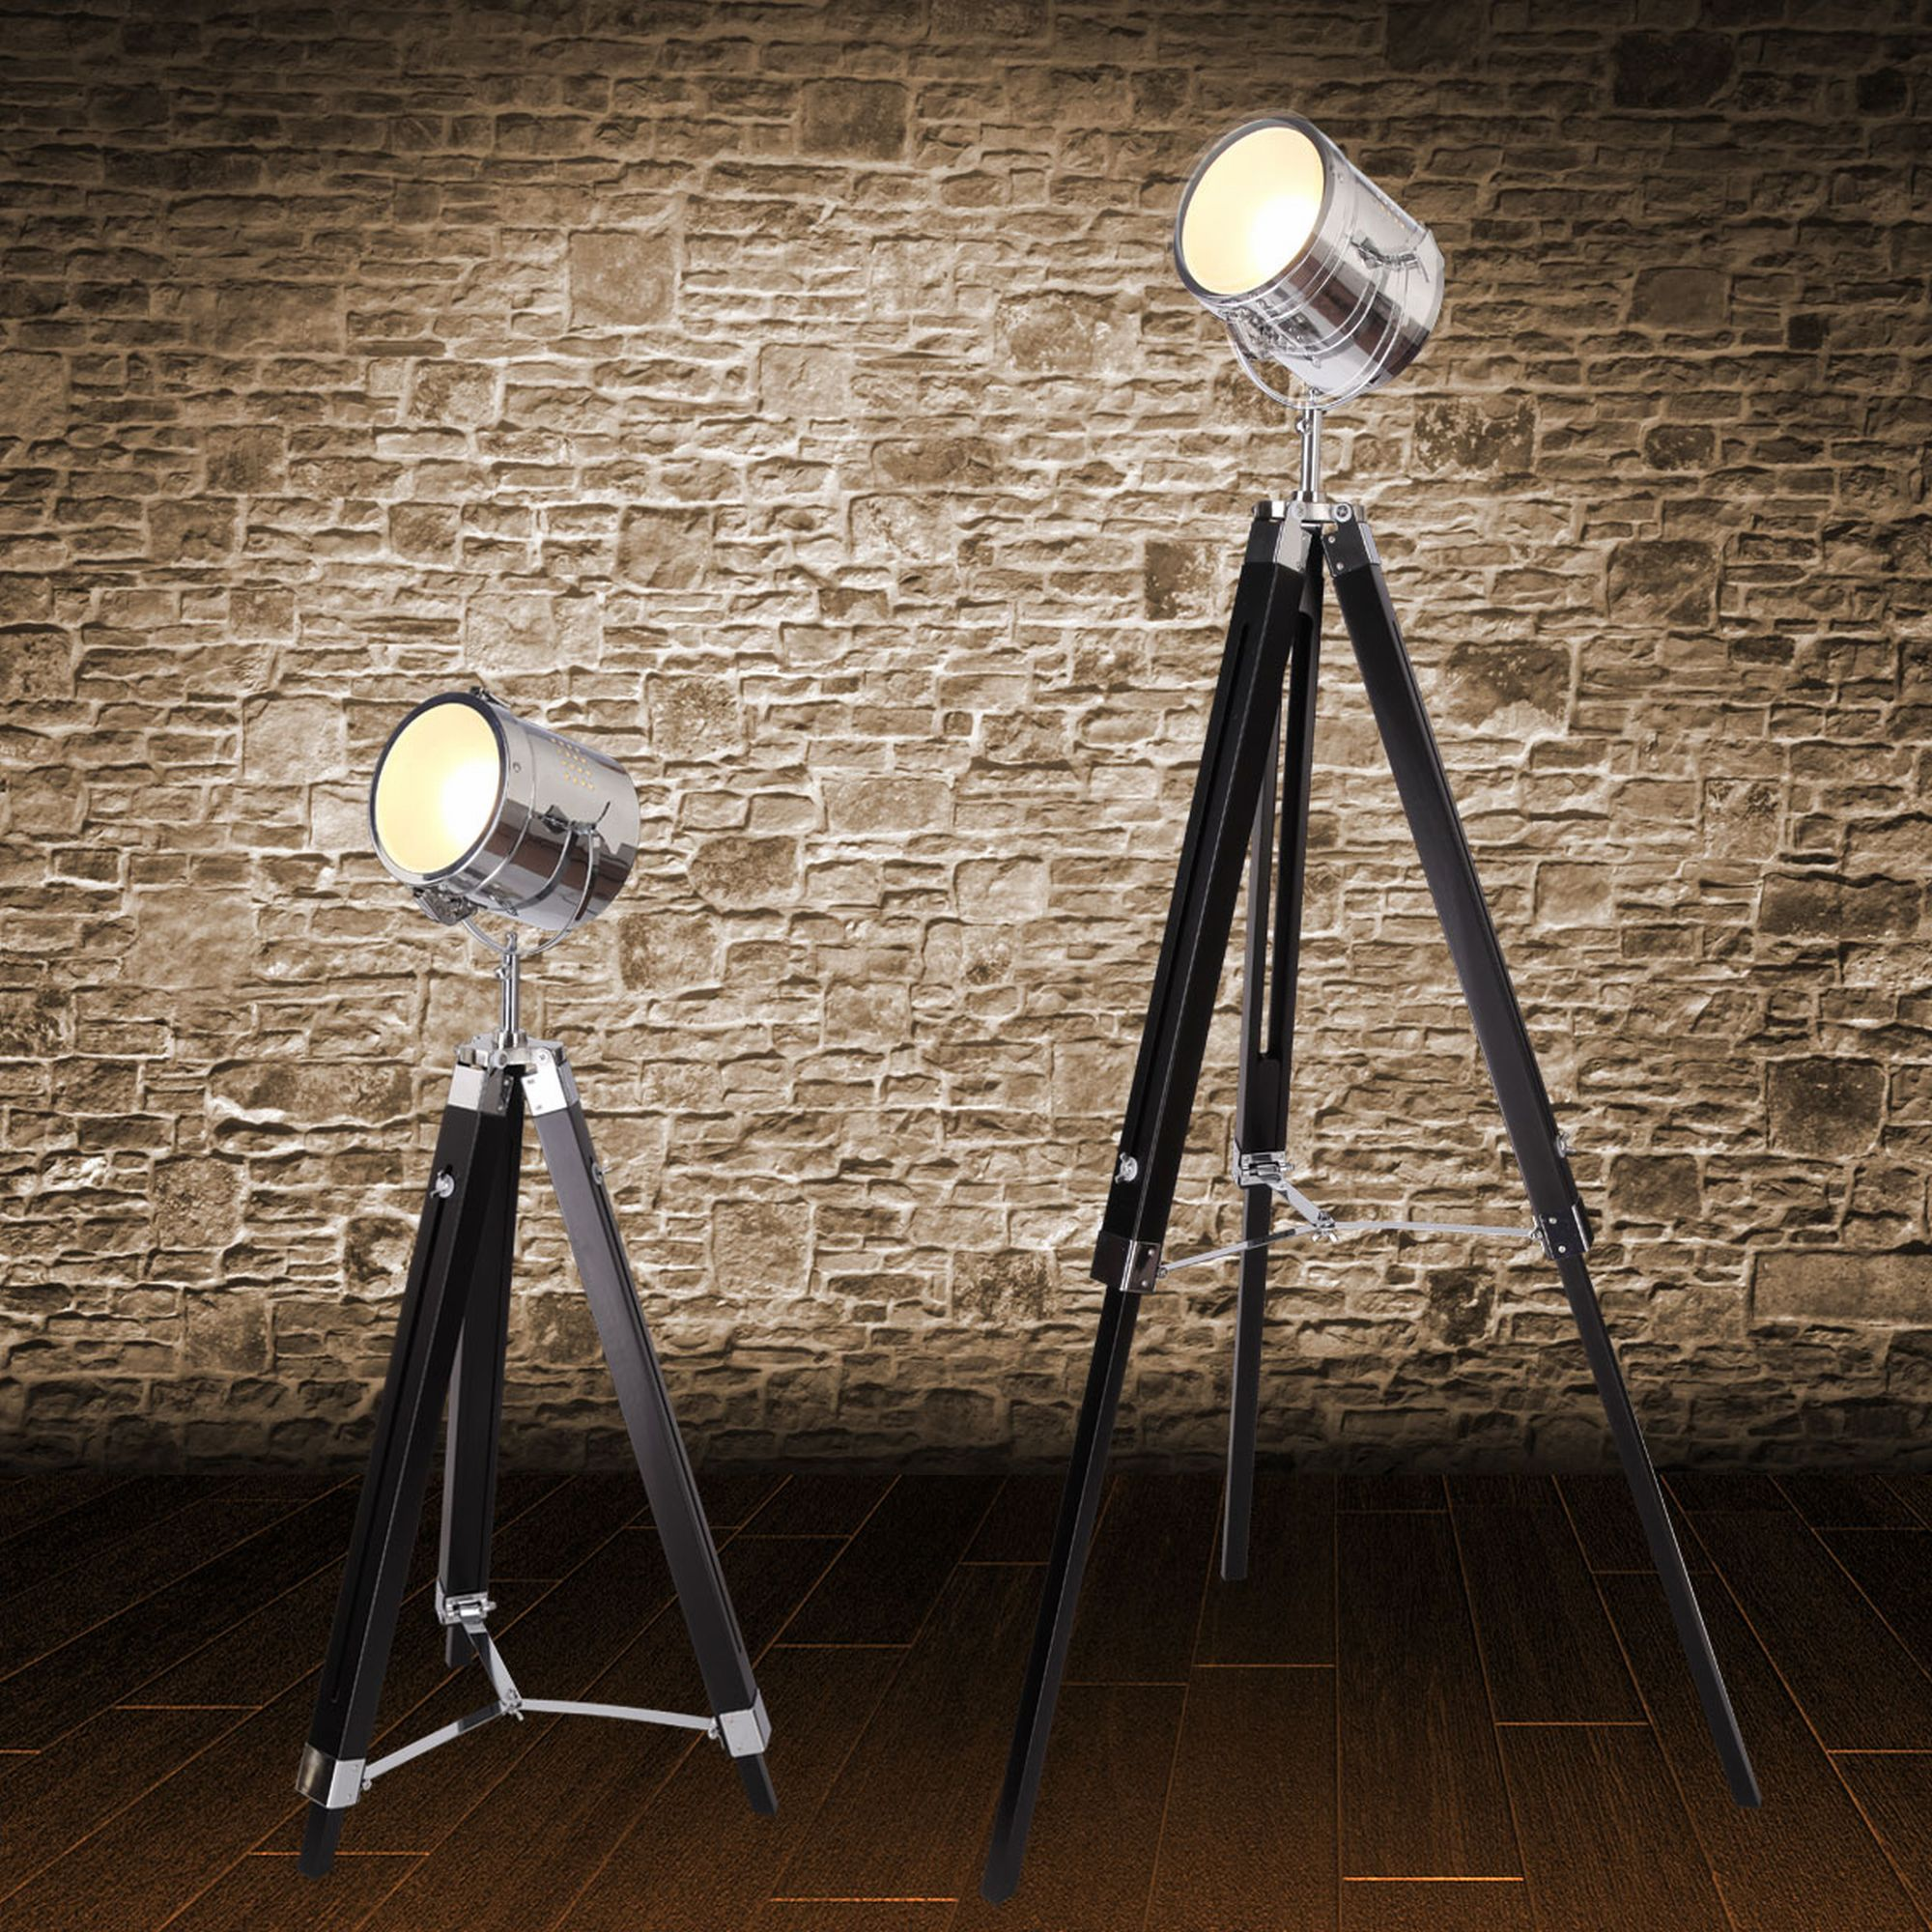 mojo stehleuchte tripod lampe dreifuss urban design h henverstellbar mq l37. Black Bedroom Furniture Sets. Home Design Ideas